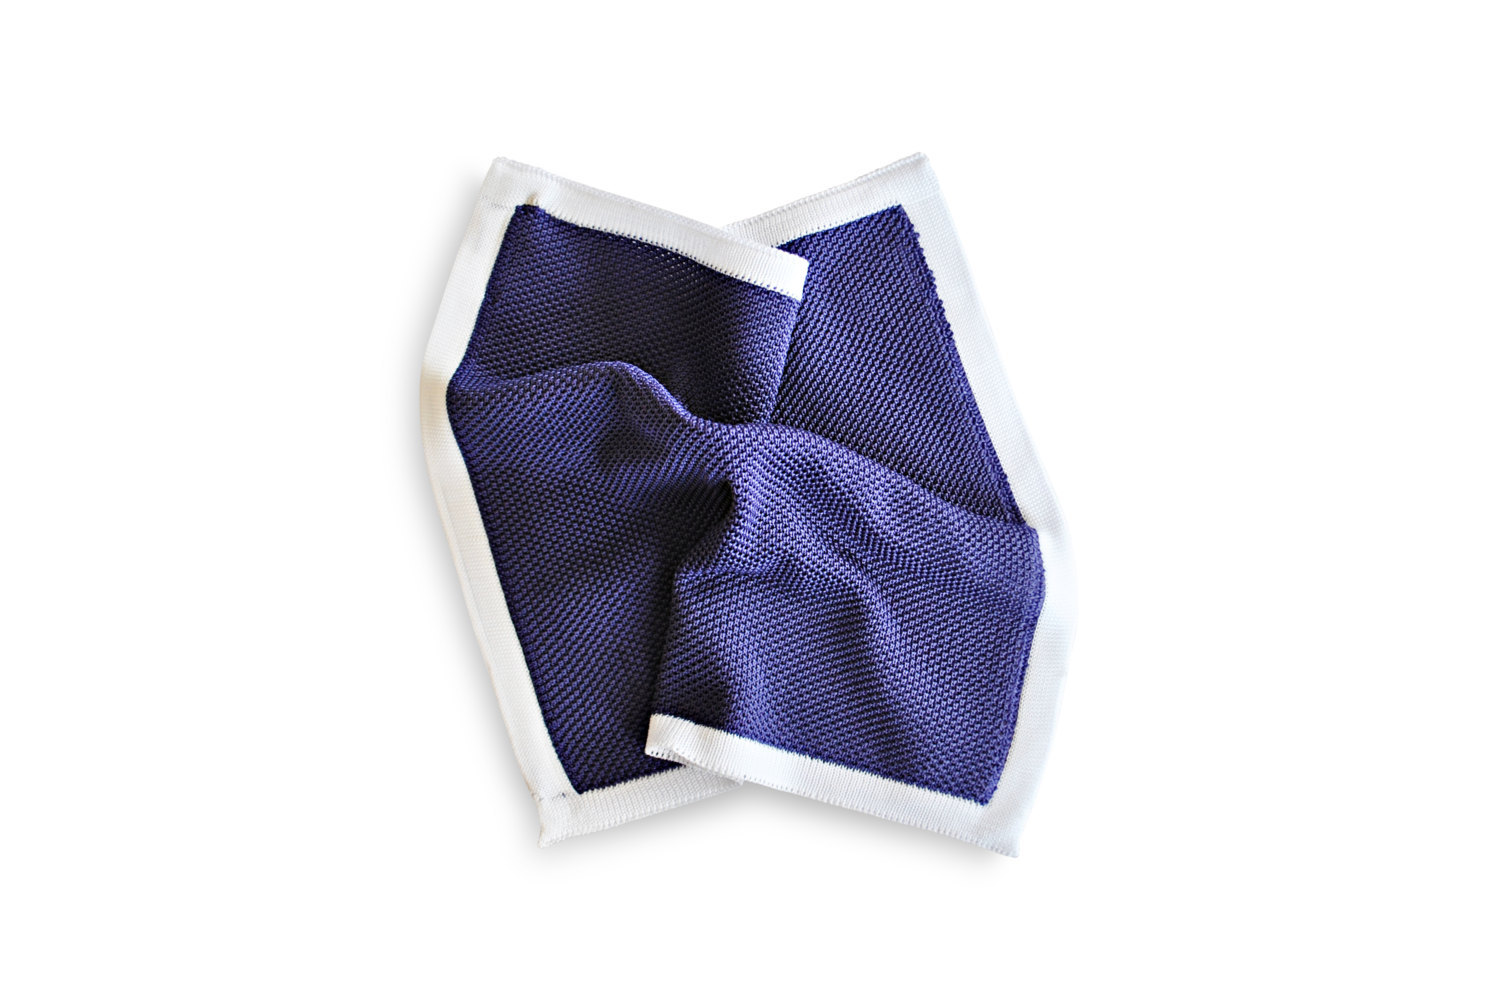 Frederick Thomas knitted Purple pocket square with White Edging FT3183